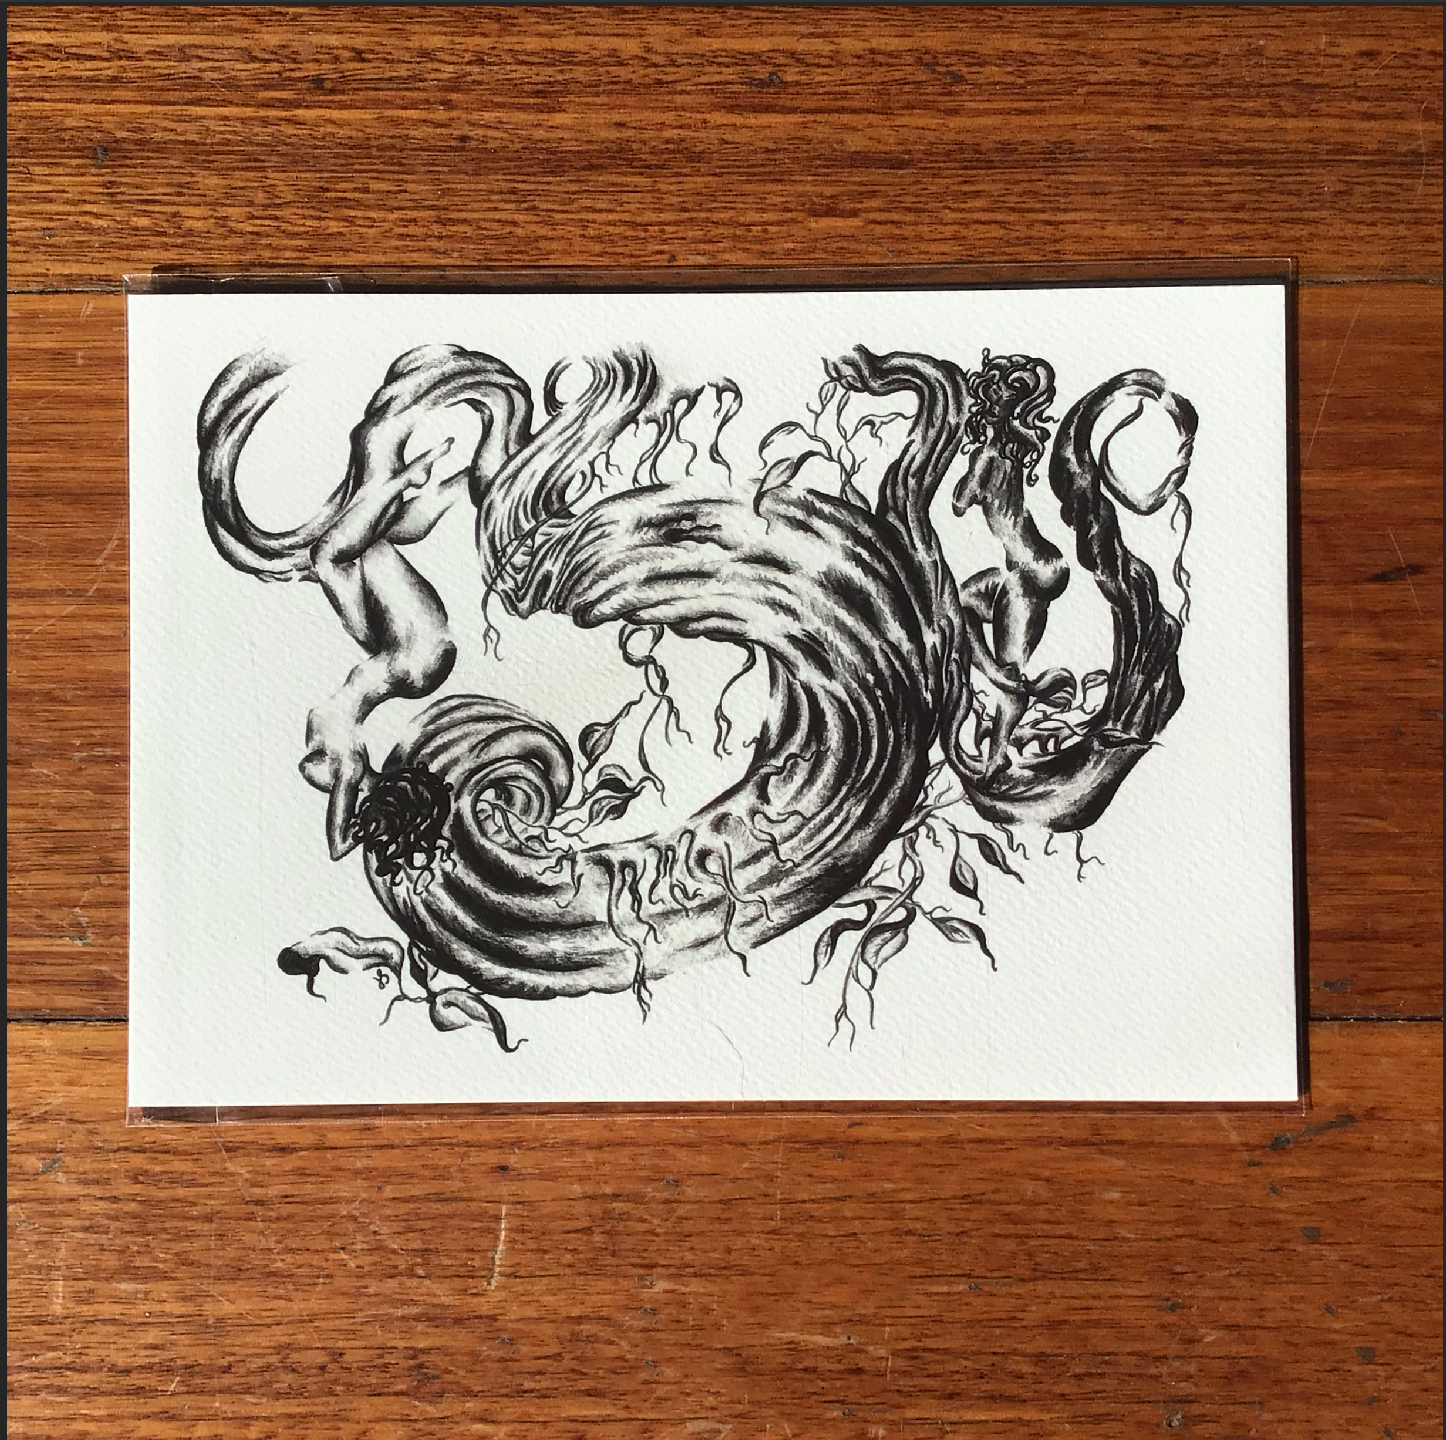 'Dryads', A5 Fine Art Print by Inktacled inktacled (Fitzroy)